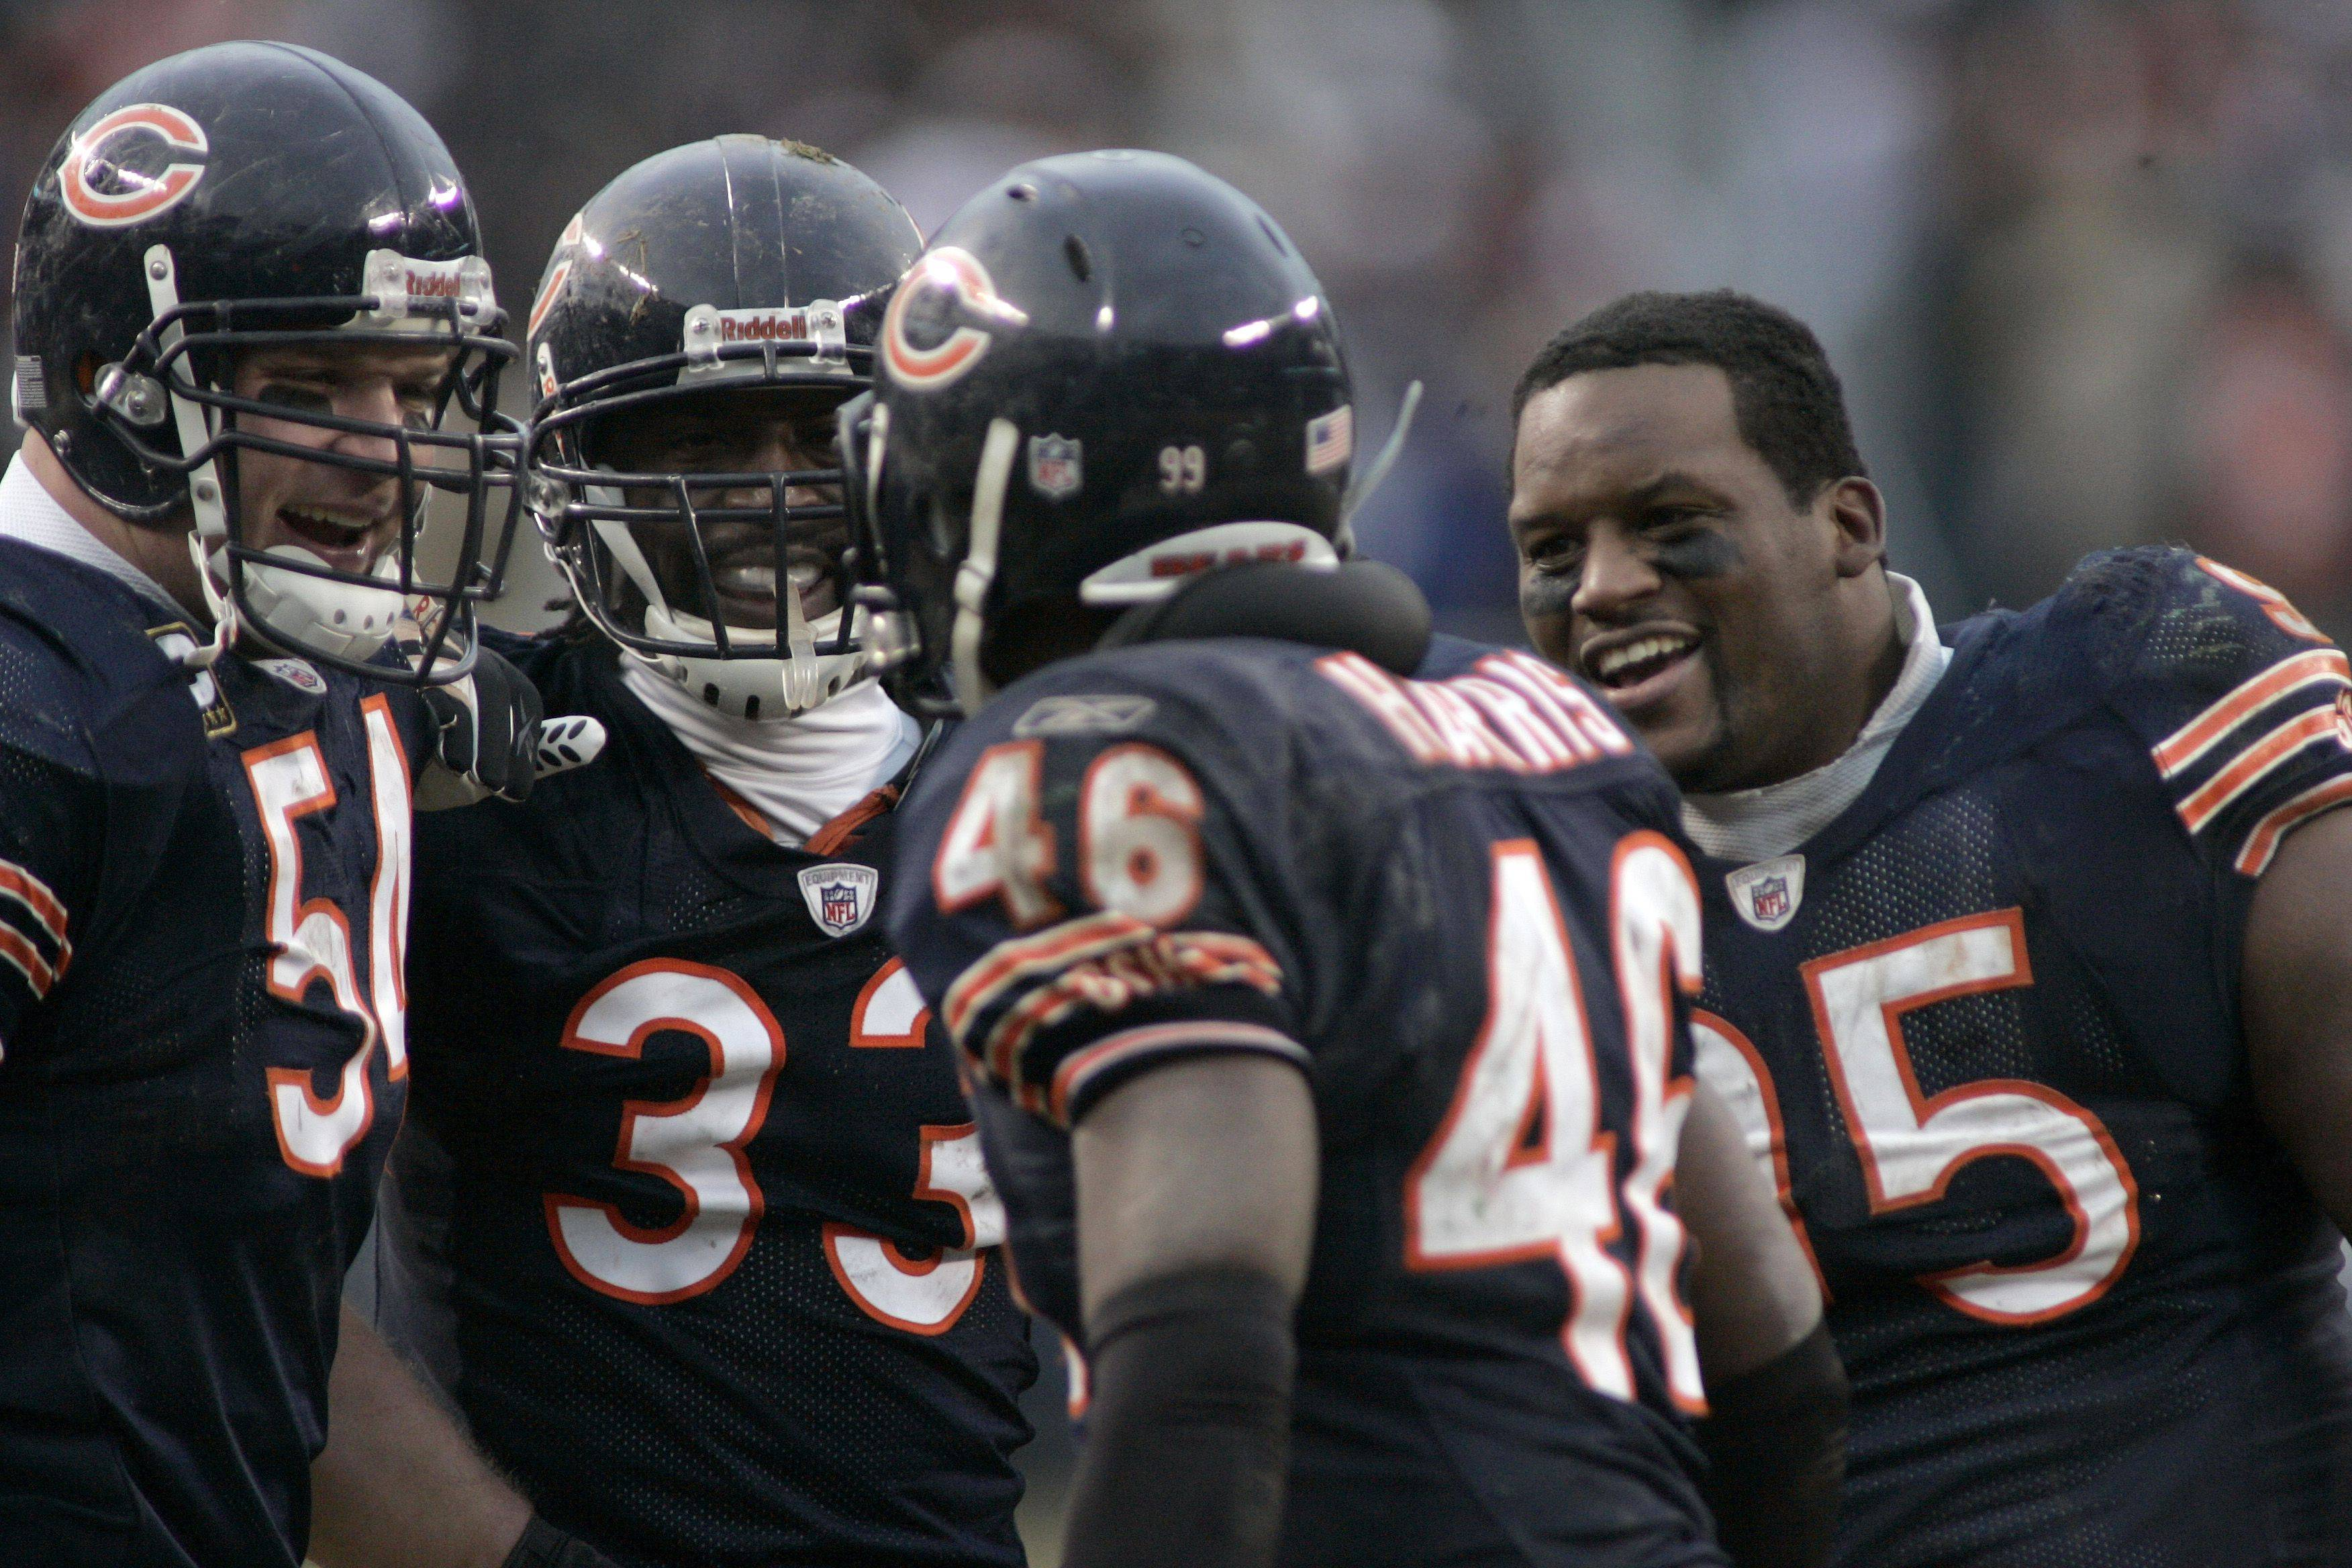 Bears safety Chris Harris (46) celebrates with his team after pulling in an interception to change the direction of the game during the Chicago Bears and New York Jets game at Soldier Field in Chicago Sunday, December 26, 2010. Chicago Bears linebacker Brian Urlacher (54) from left, Chicago Bears cornerback Charles Tillman (33) and Chicago Bears defensive tackle Anthony Adams (95).